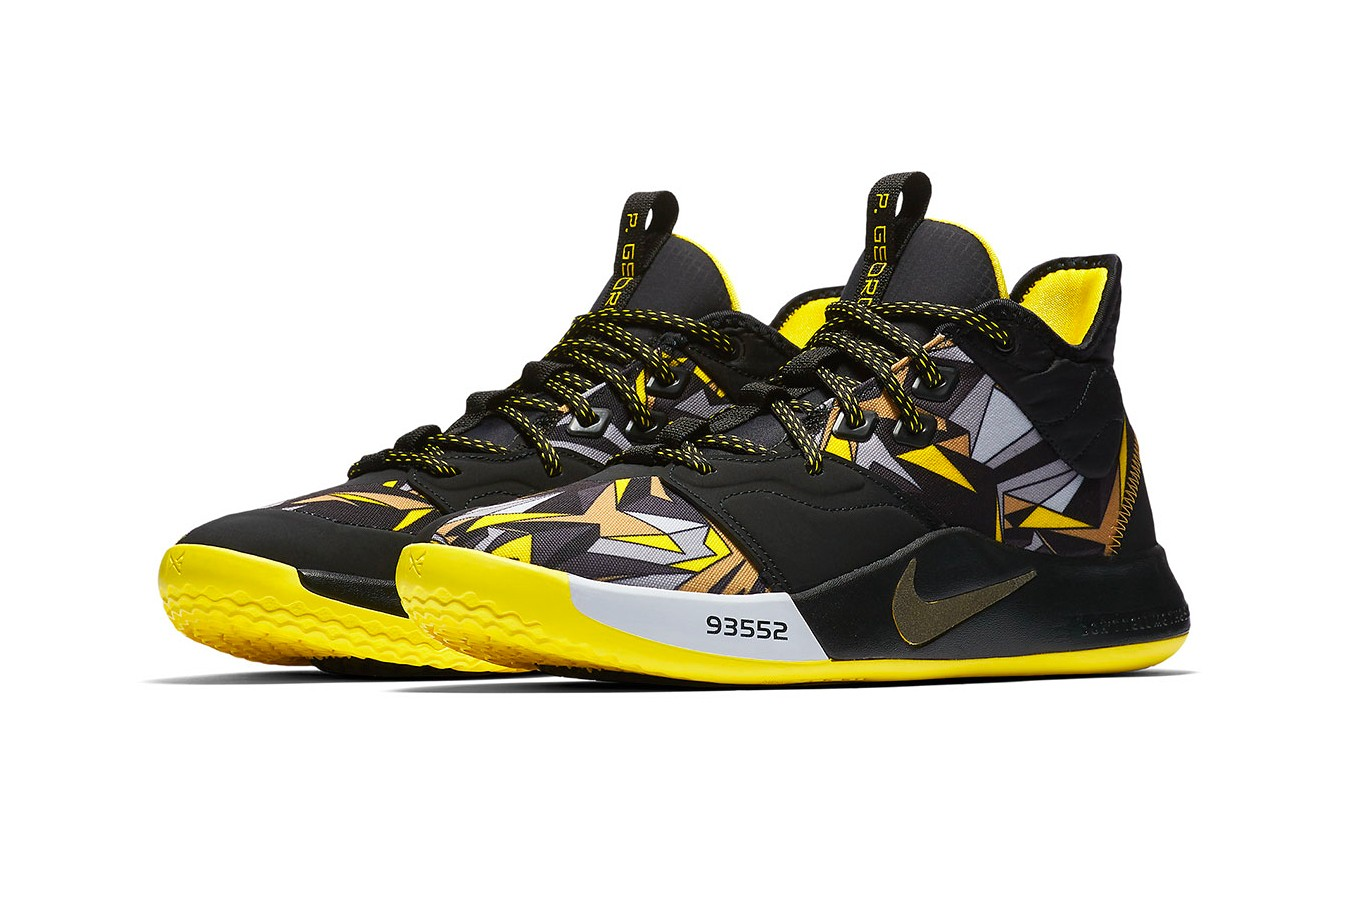 Nike PG3 Mamba Day Colorway Release